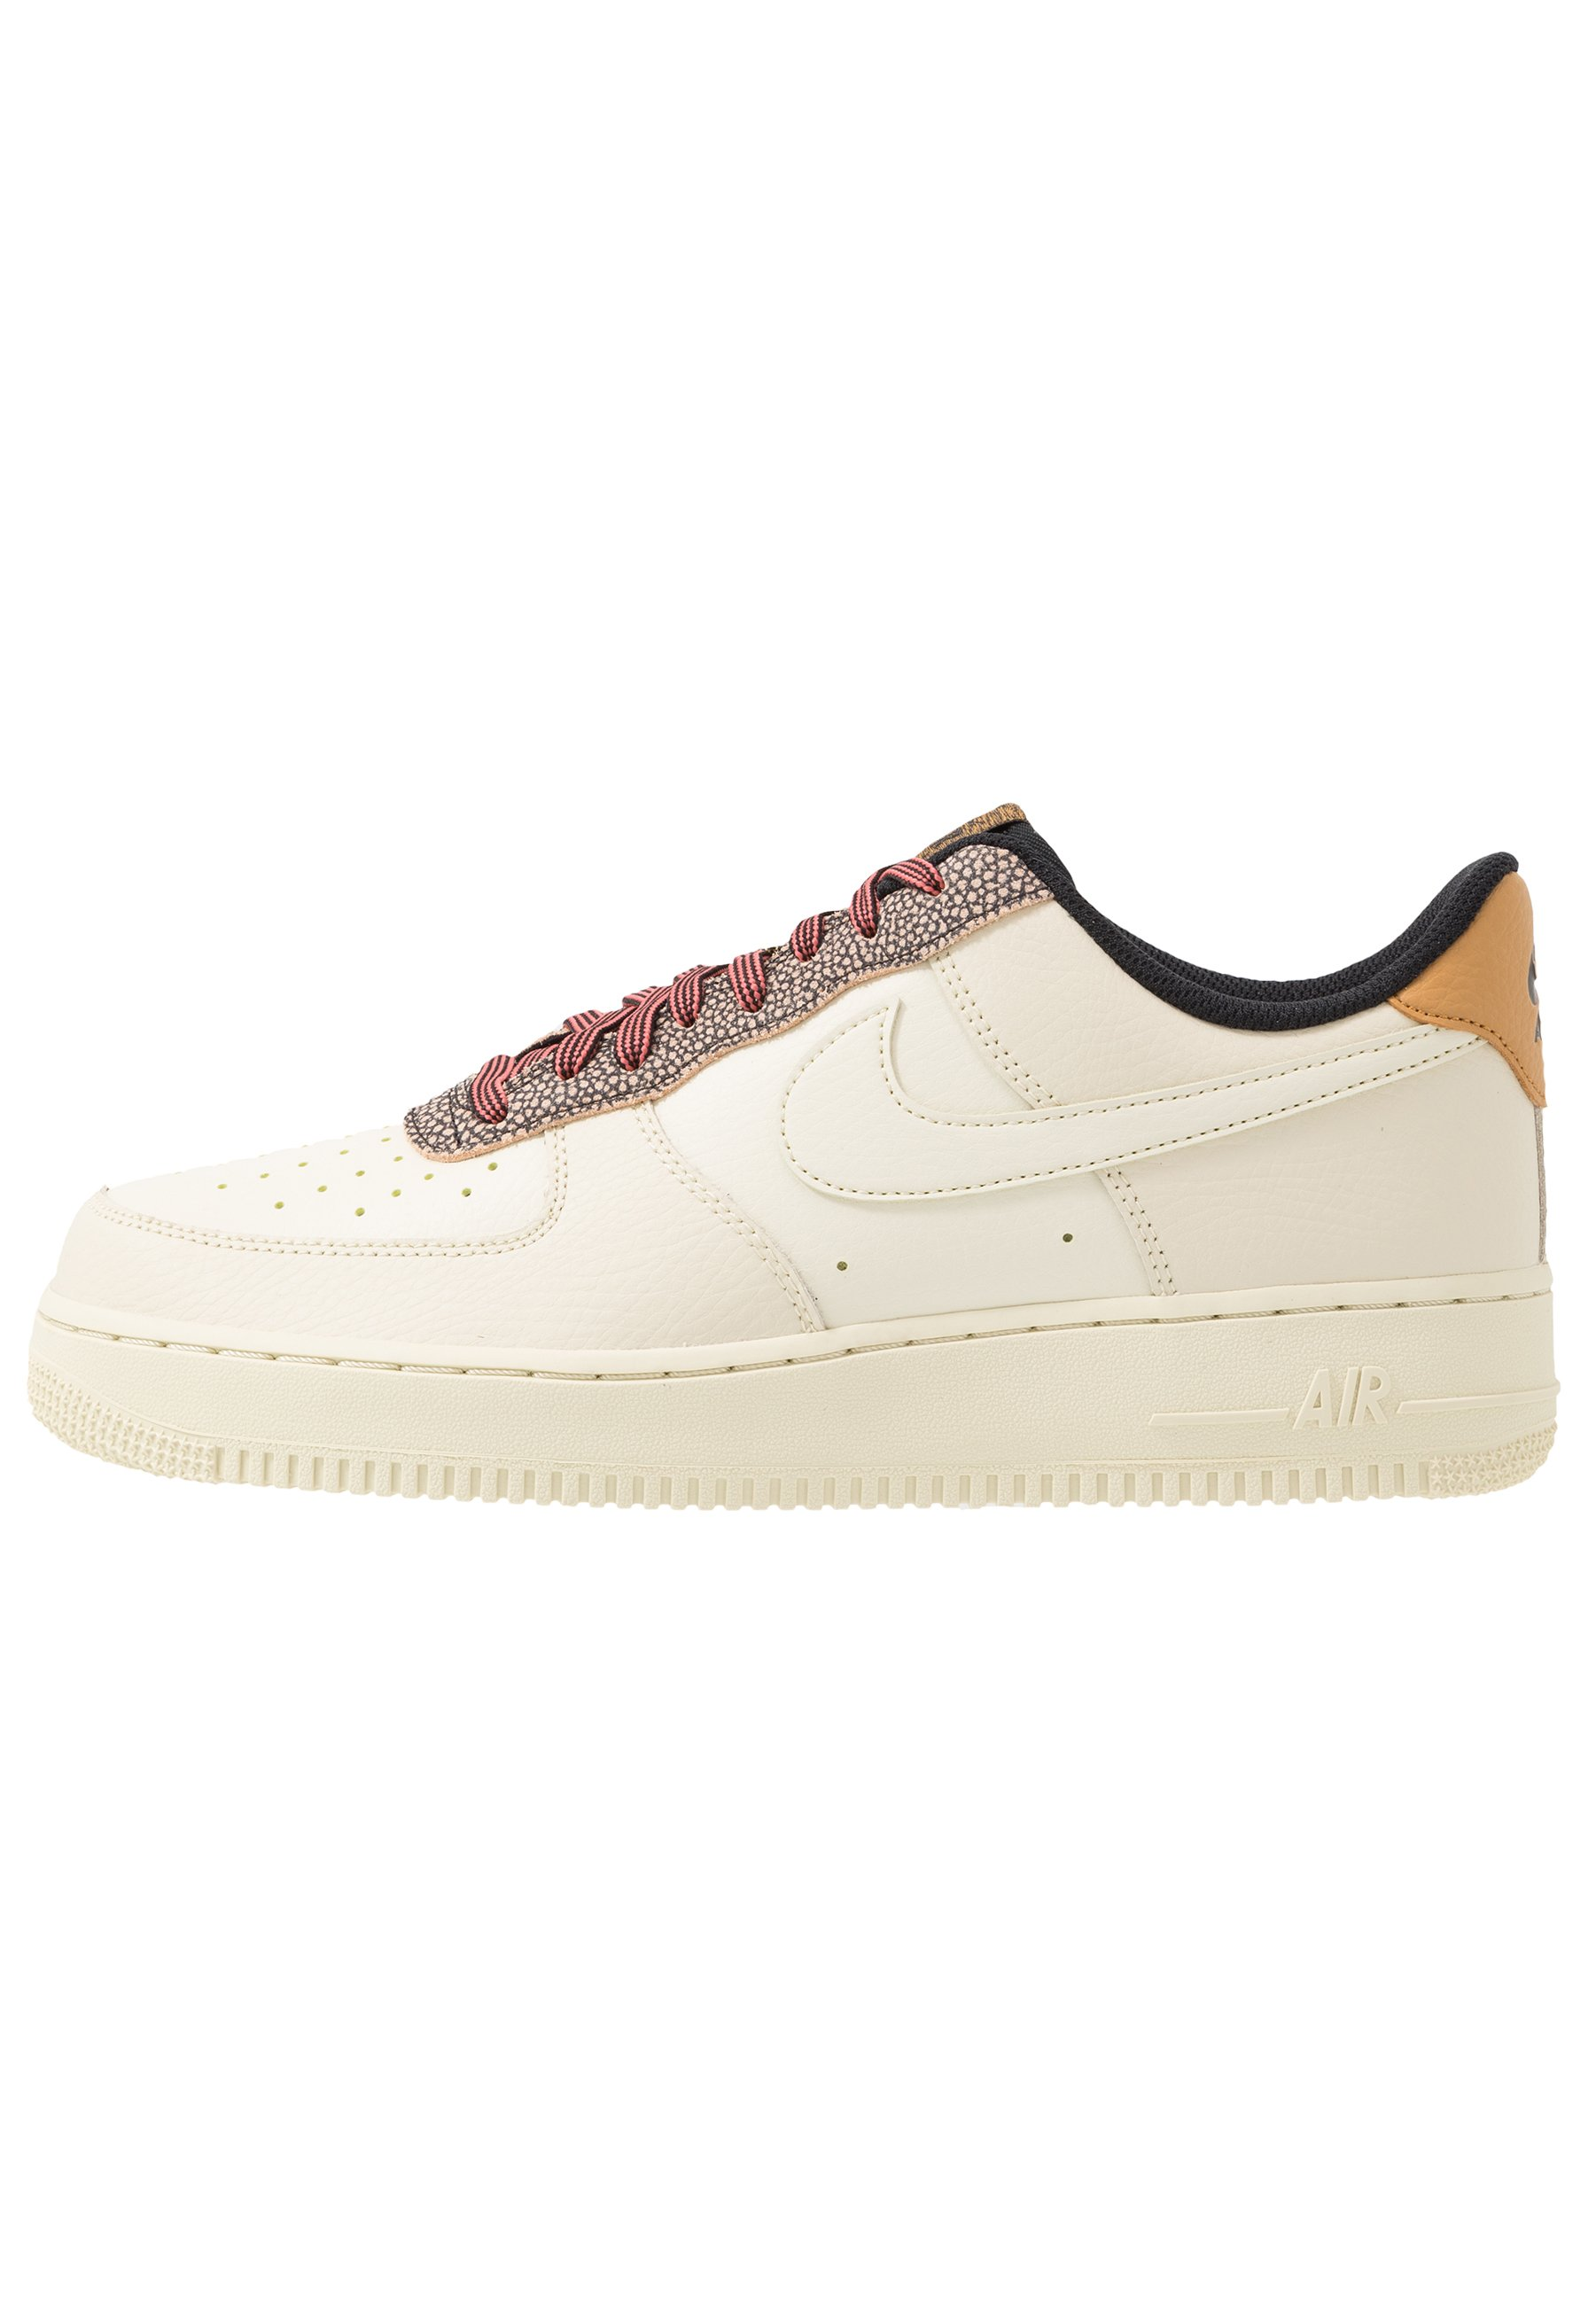 AIR FORCE 1 '07 LV8 Sneakers laag wheatshimmerclub goldblack